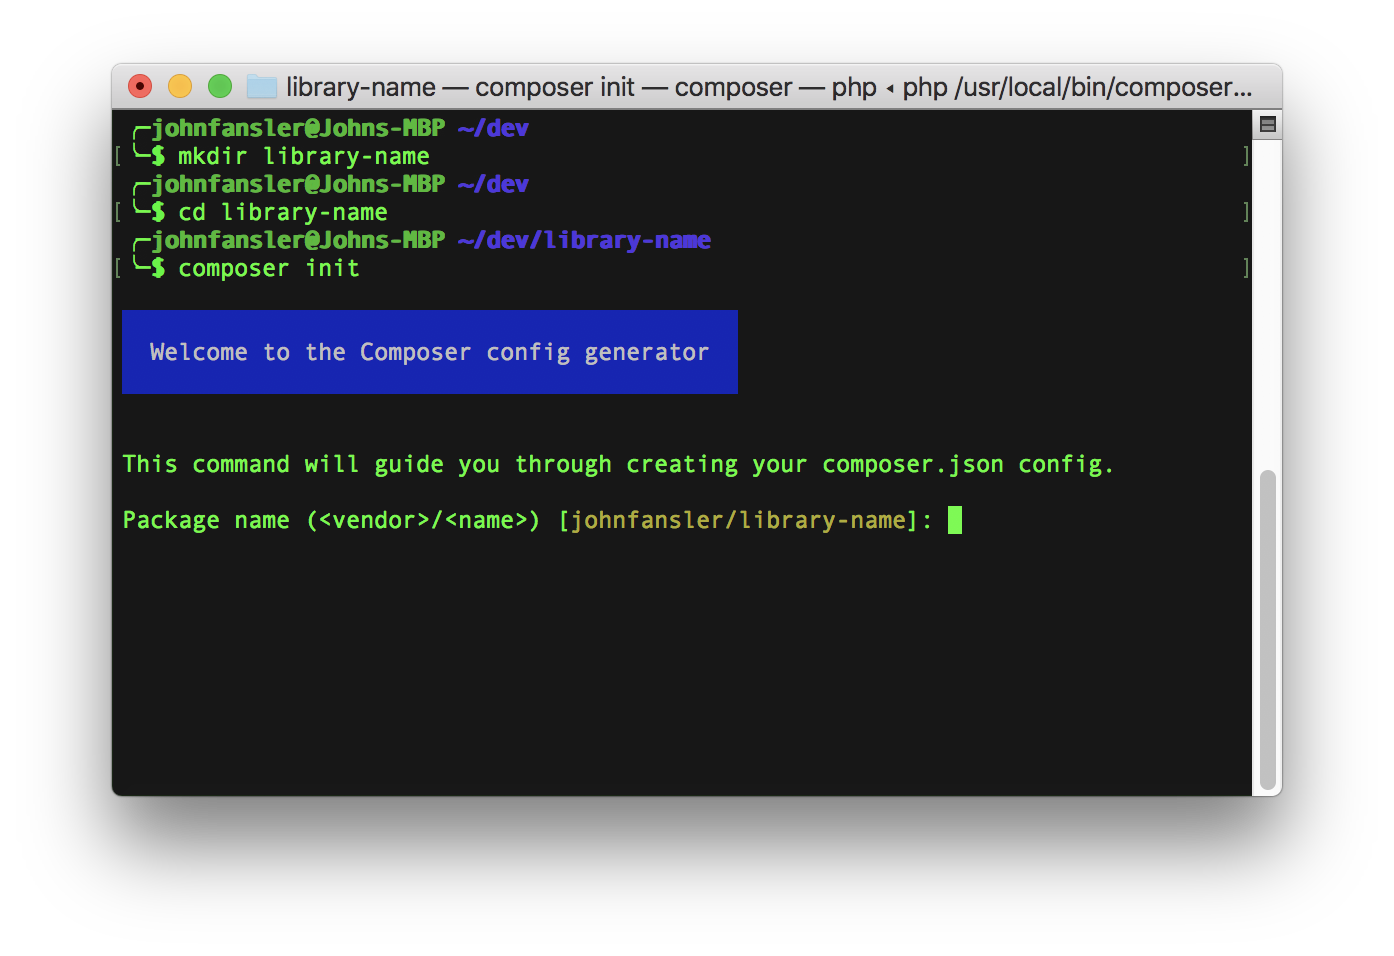 Screenshot of *composer init*